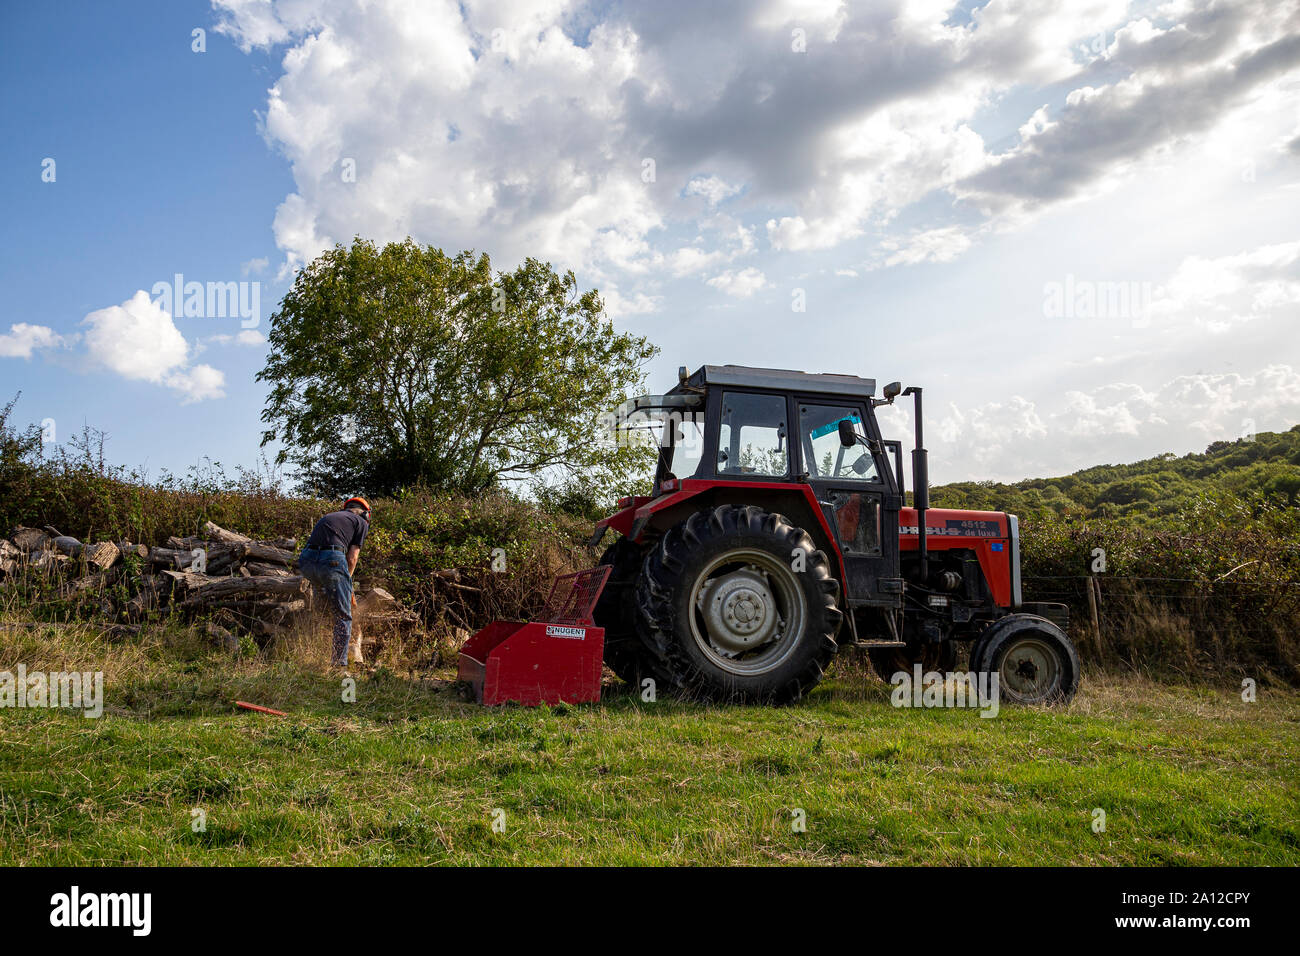 Tractor, Modern, Agriculture, Red, Retail, Agricultural Equipment, Agricultural Field, Agricultural Machinery, Business, Color Image, Commercial Land Stock Photo